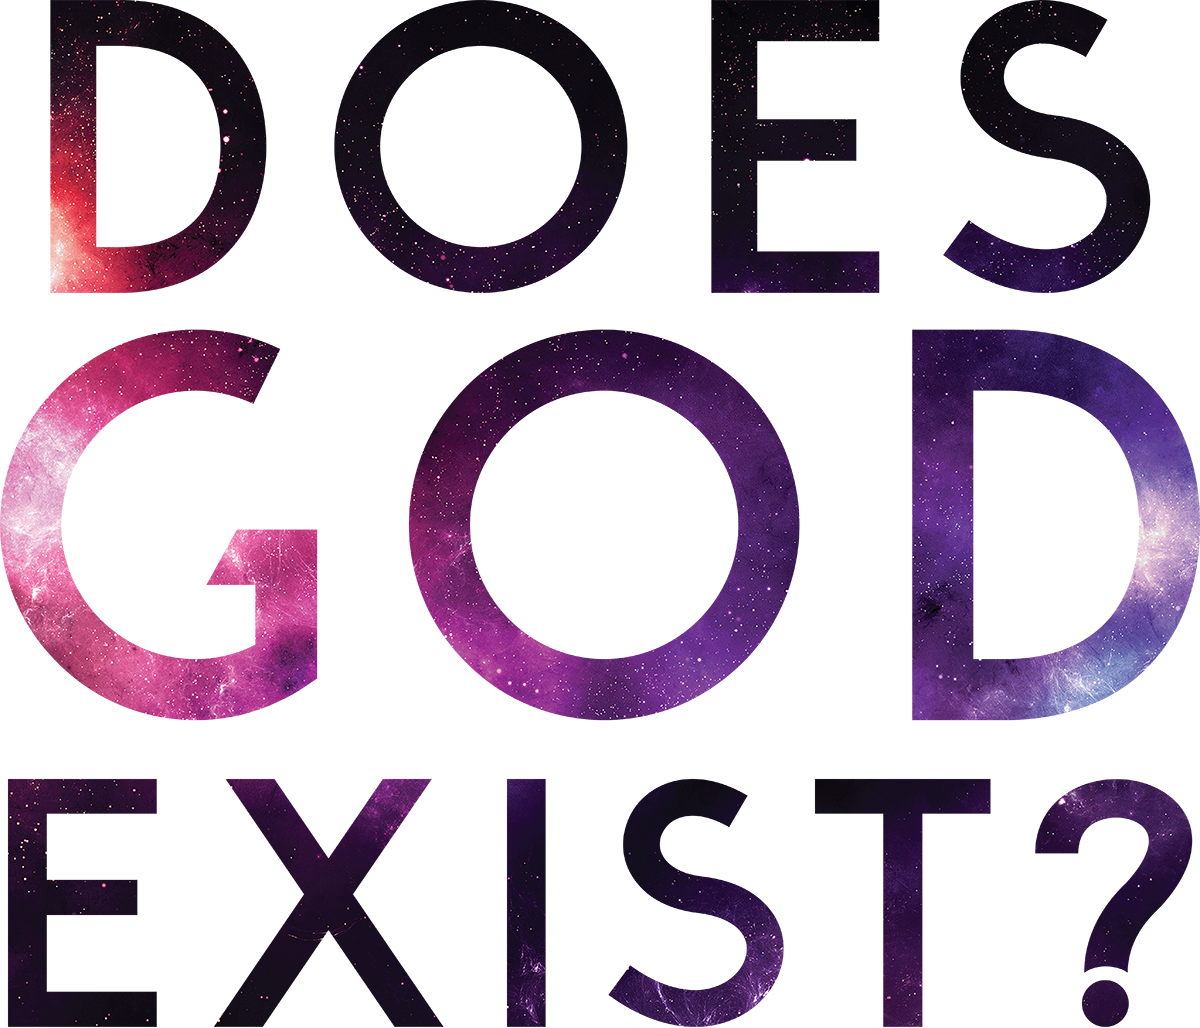 Does God Exist? Proof 3: The Origin of Life